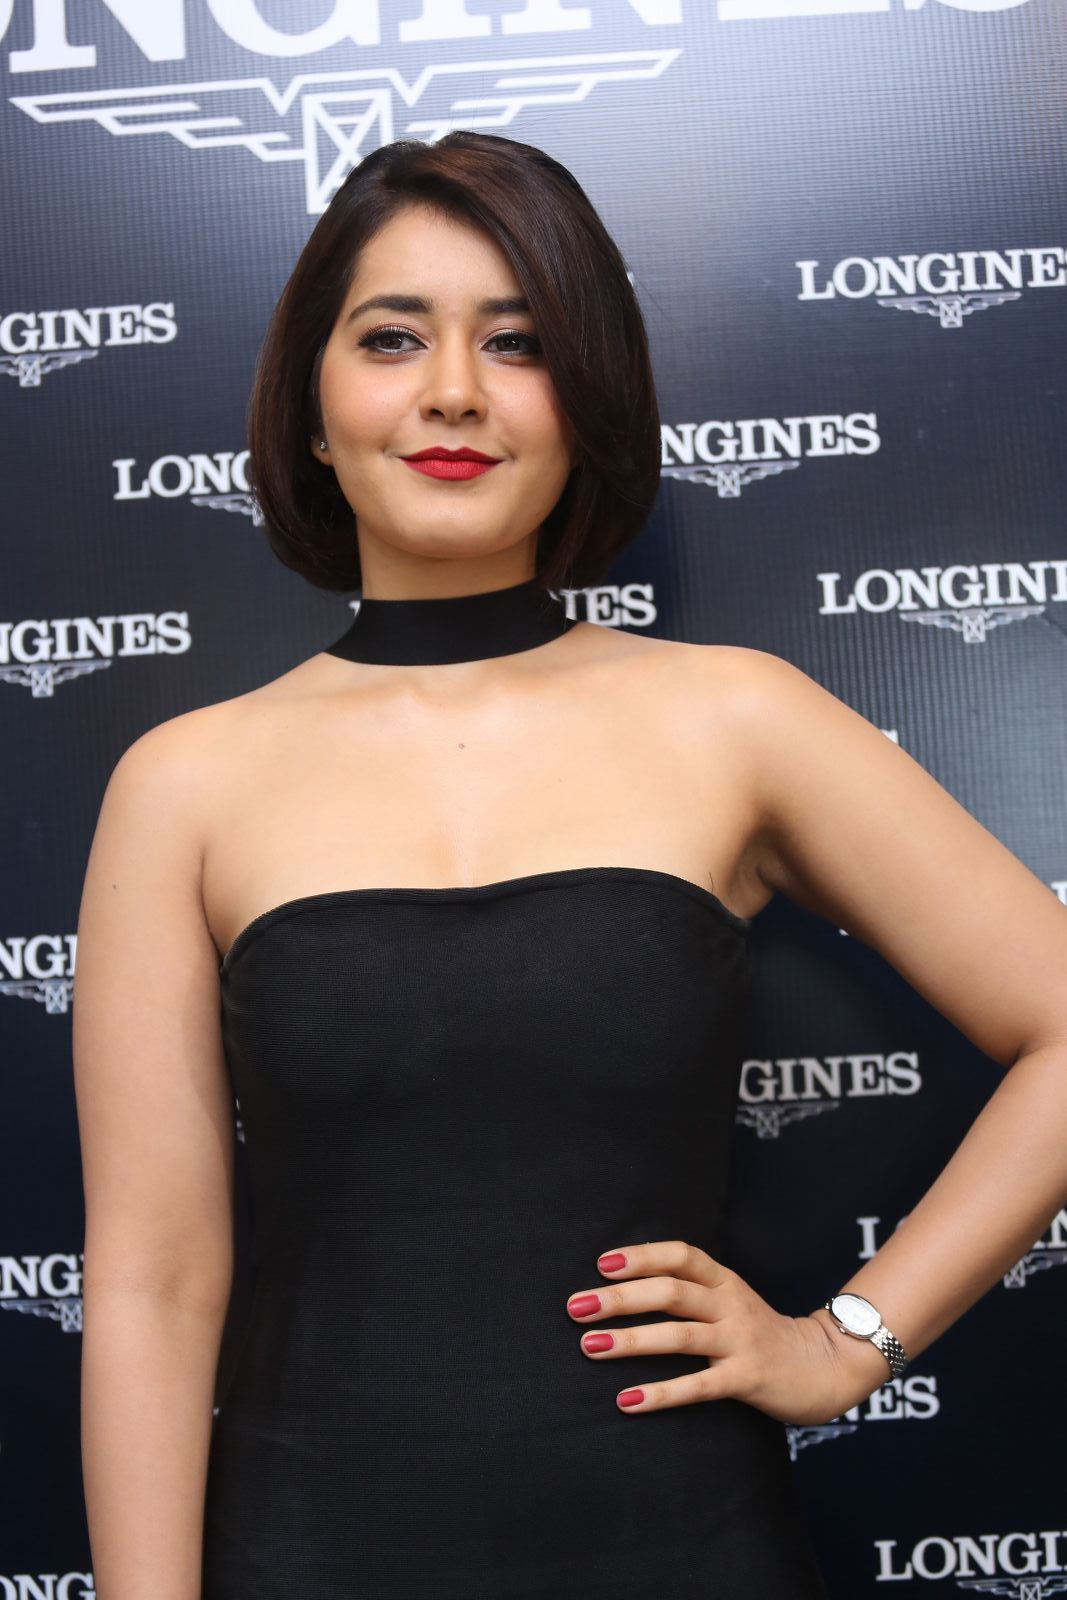 Raashi Khanna looks stunning in Black Strapless dress by Dimple And Amrin at Launch of Longines Watches